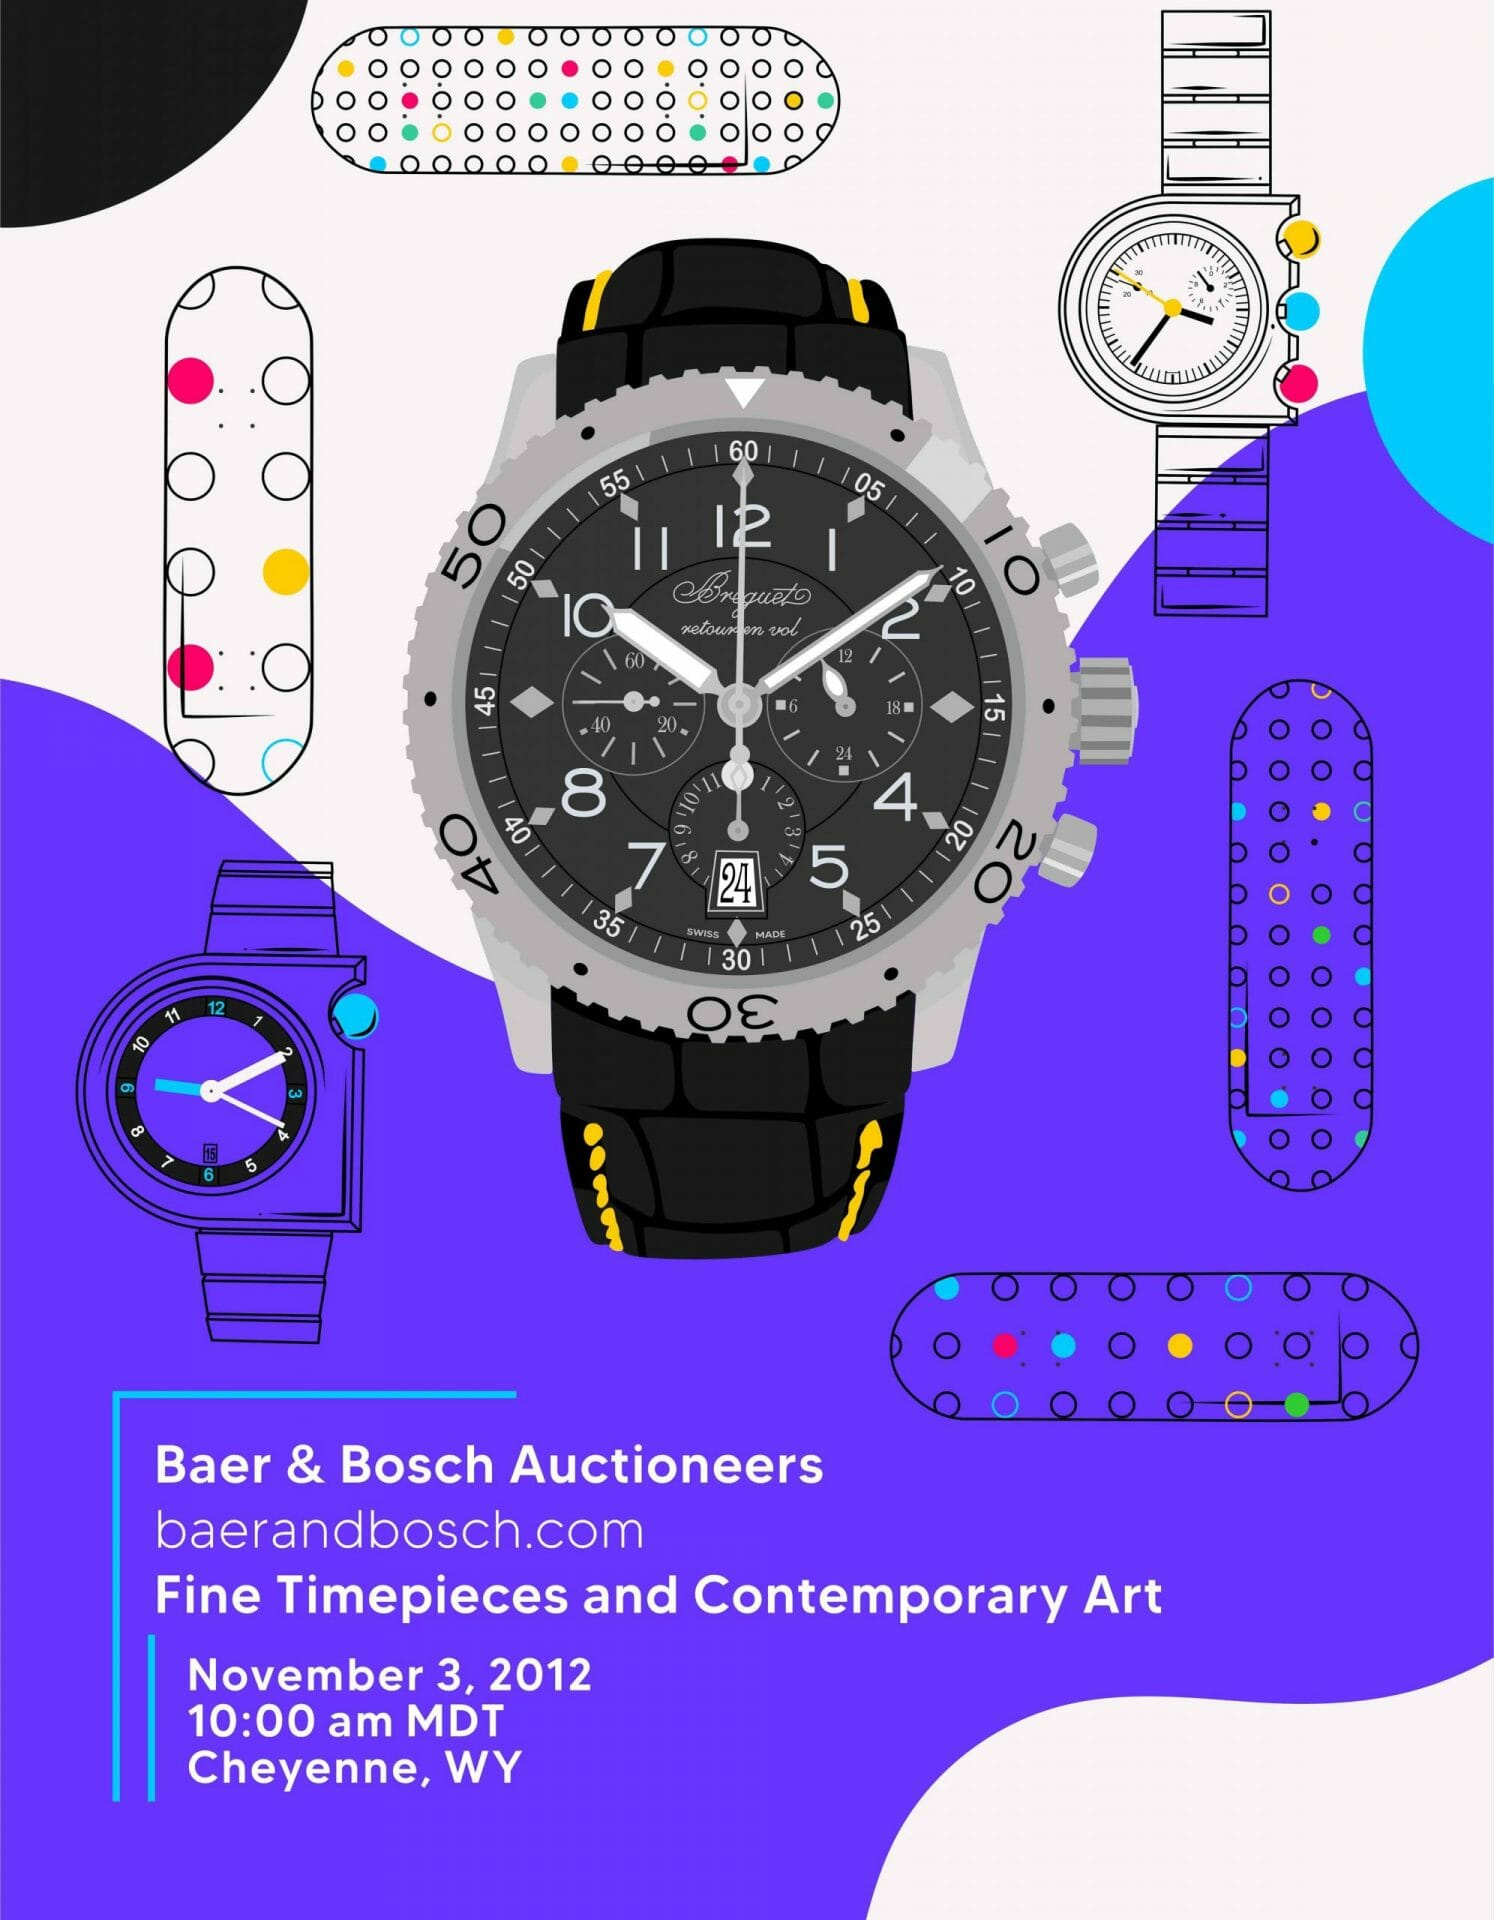 Fine Timepieces and Contemporary Art November 3, 2012 Auction Catalog - Baer & Bosch Auctioneers